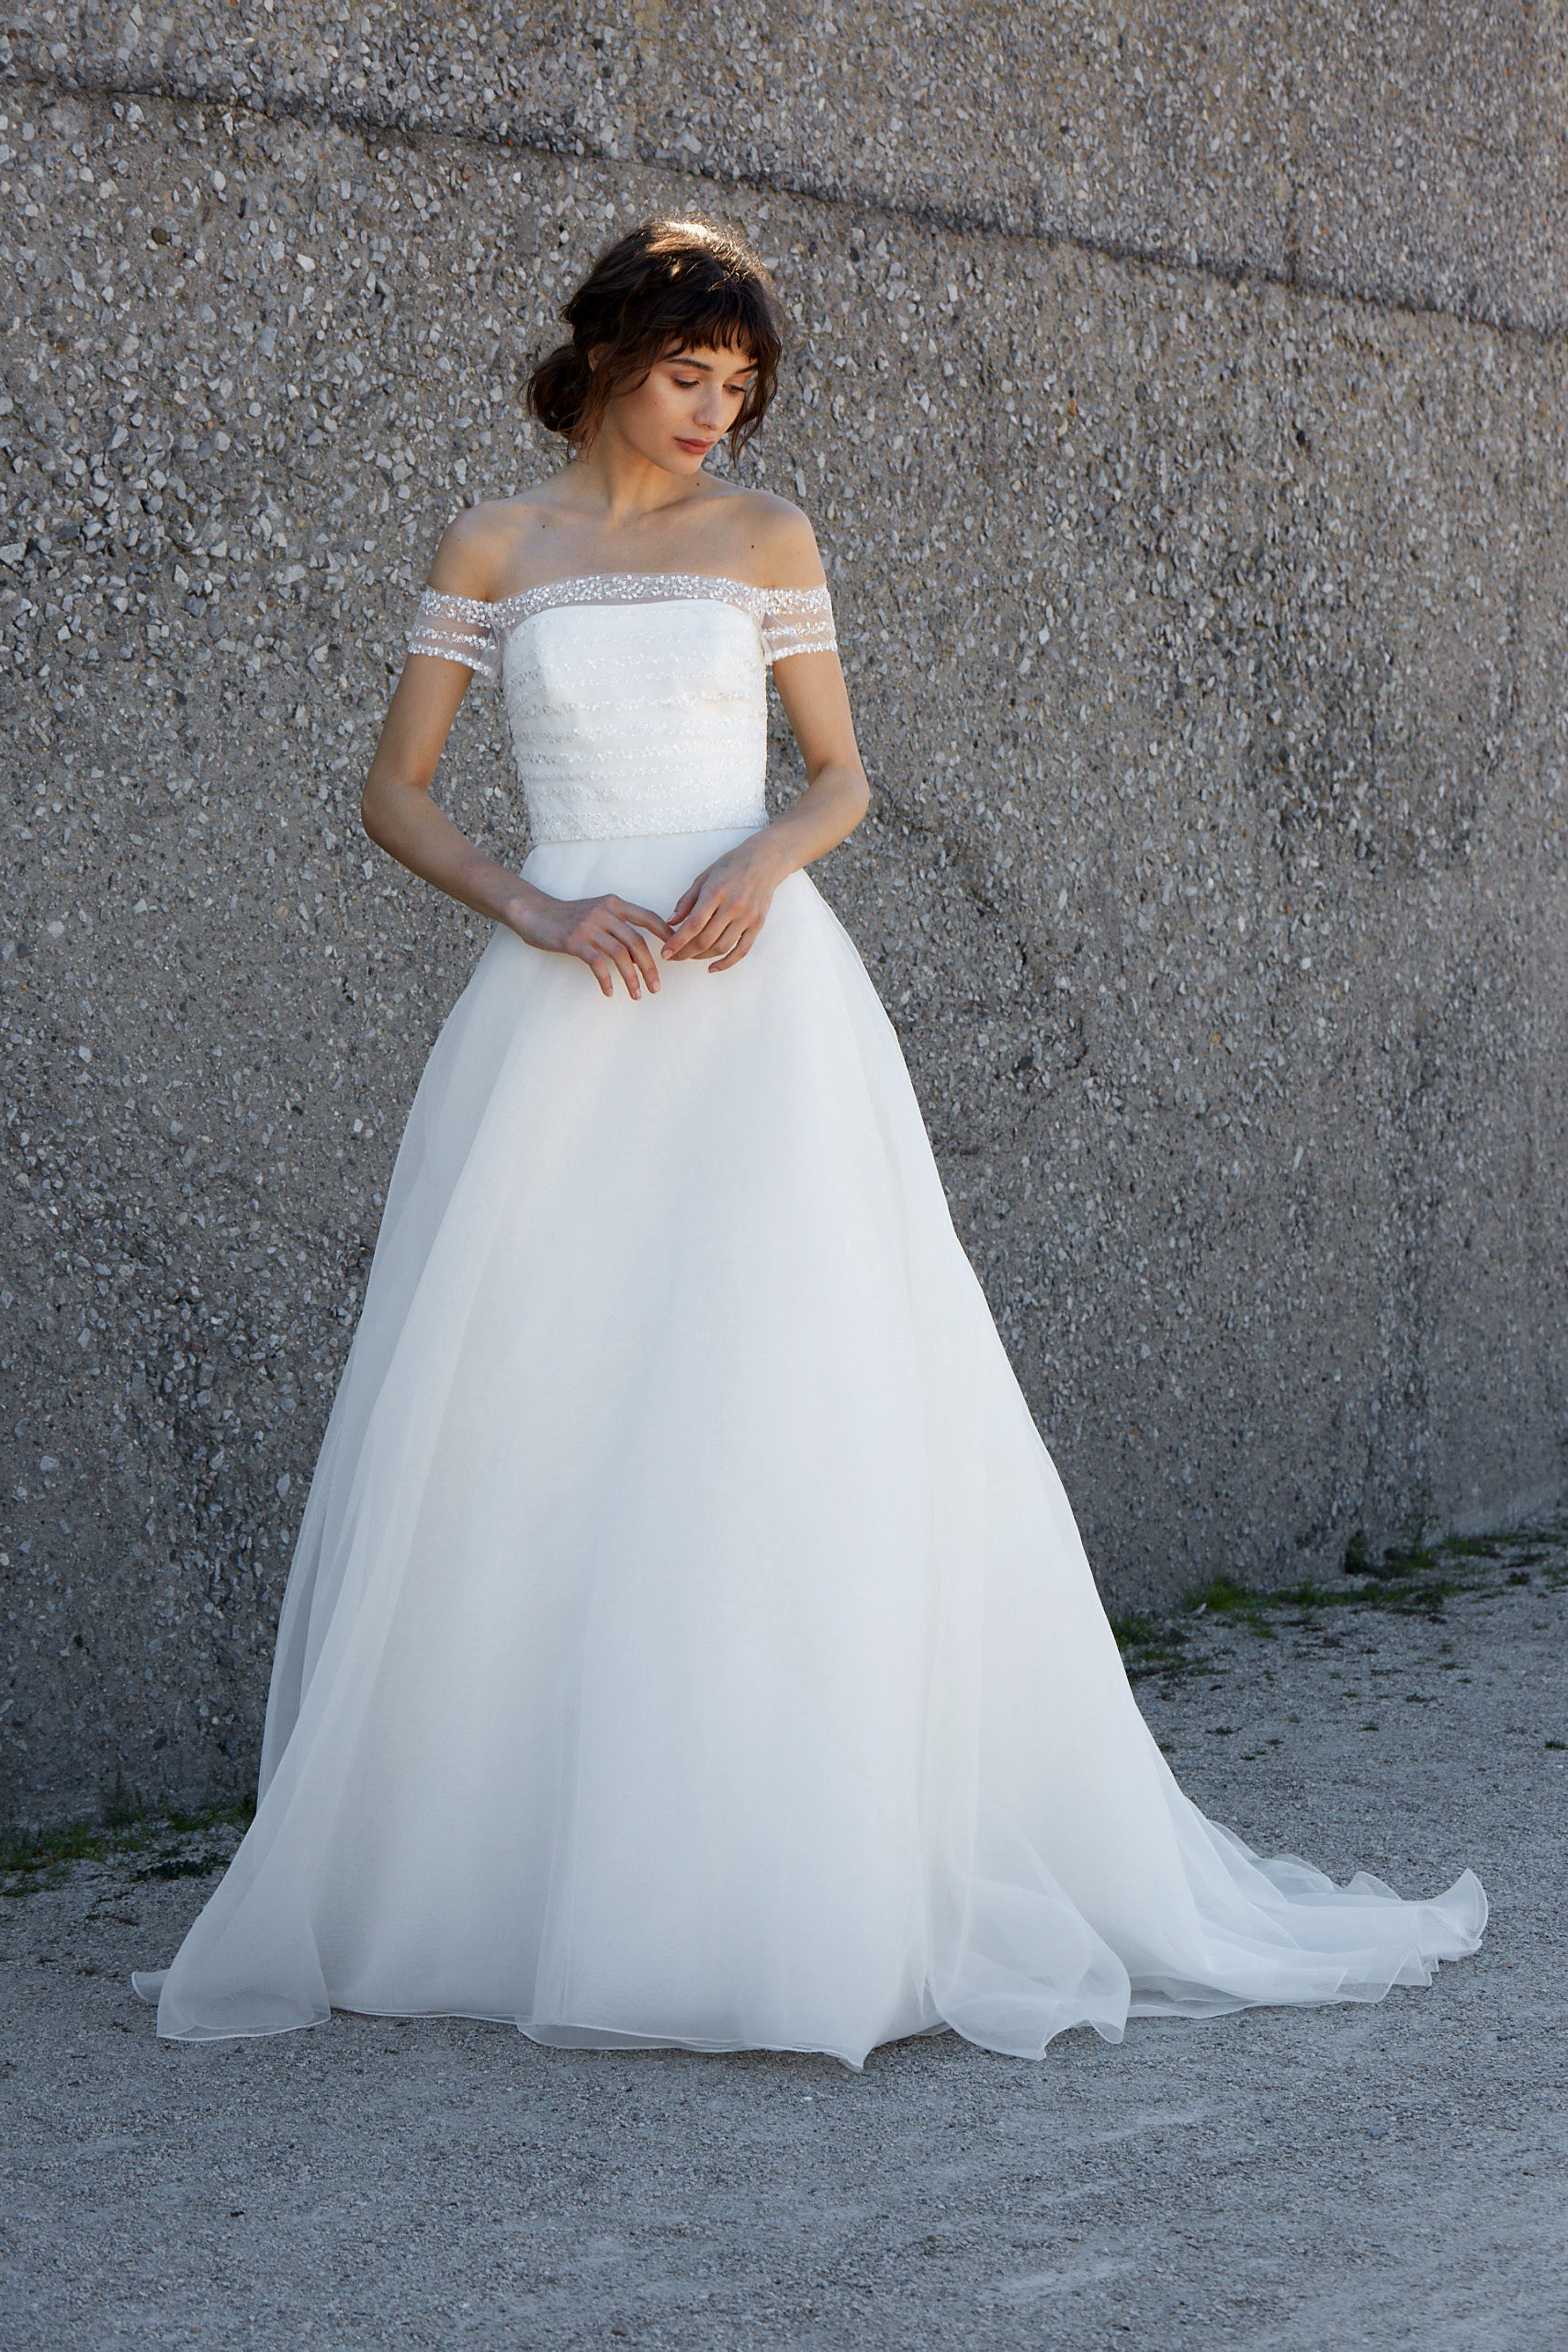 nouvelle amsale dress fall 2018 off the shoulder ball gown